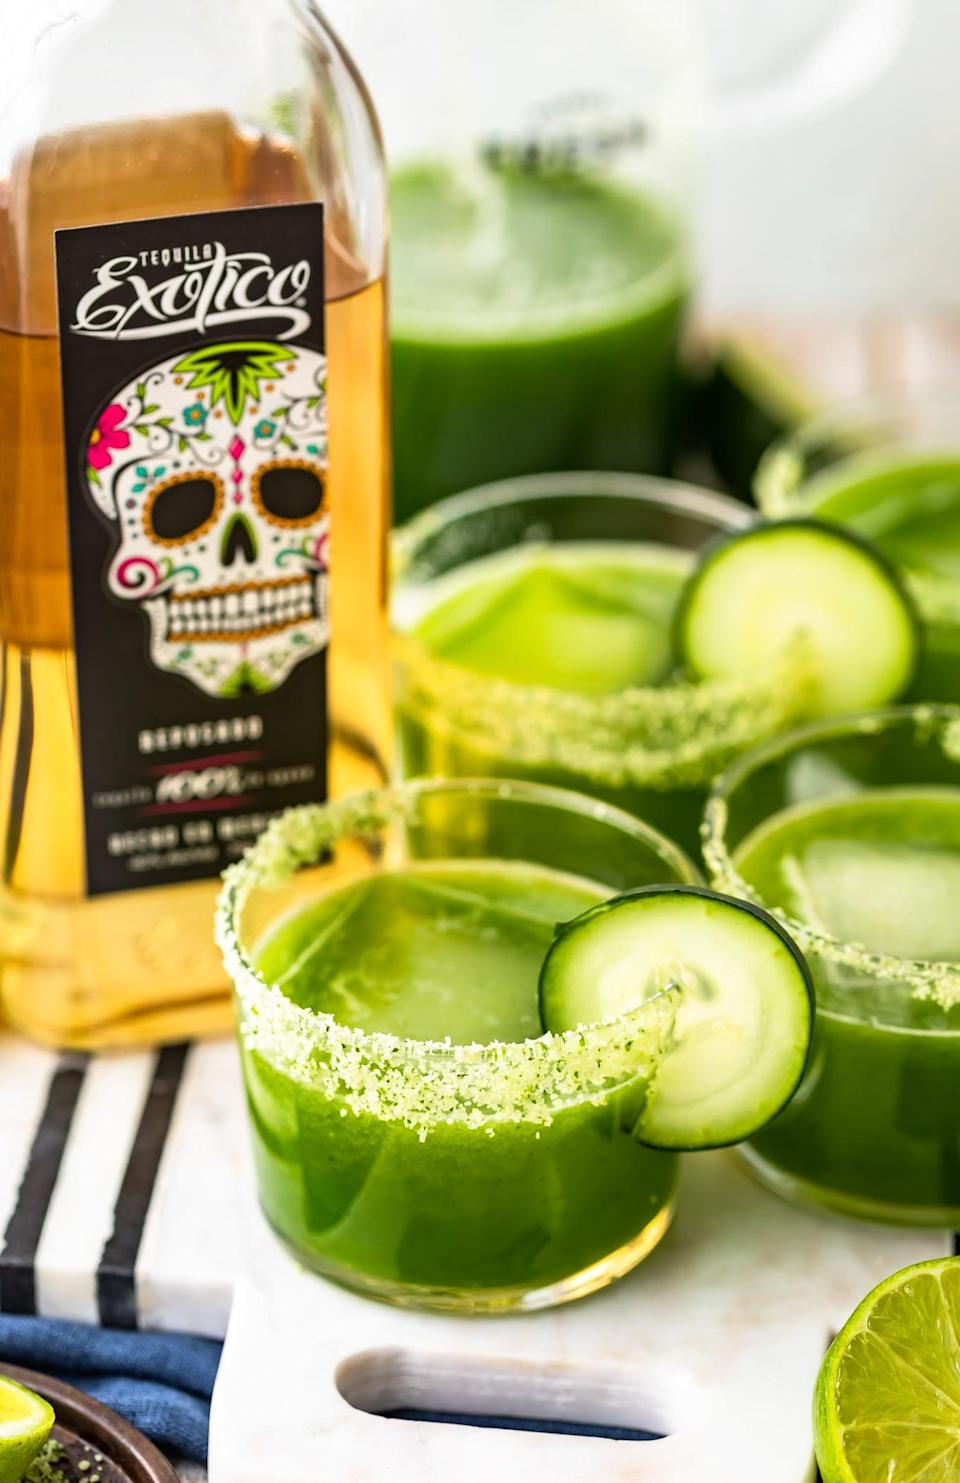 """<p>If spicy drinks are your thing, we promise you'll fall in love with this tangy cocktail. It packs a big punch, so feel free to add as much (or as little) spice as you want.</p> <p><strong>Get the recipe</strong>: <a href=""""https://www.thecookierookie.com/spicy-cucumber-jalapeno-margarita-recipe/"""" class=""""link rapid-noclick-resp"""" rel=""""nofollow noopener"""" target=""""_blank"""" data-ylk=""""slk:spicy cucumber jalapeño margarita"""">spicy cucumber jalapeño margarita</a></p>"""